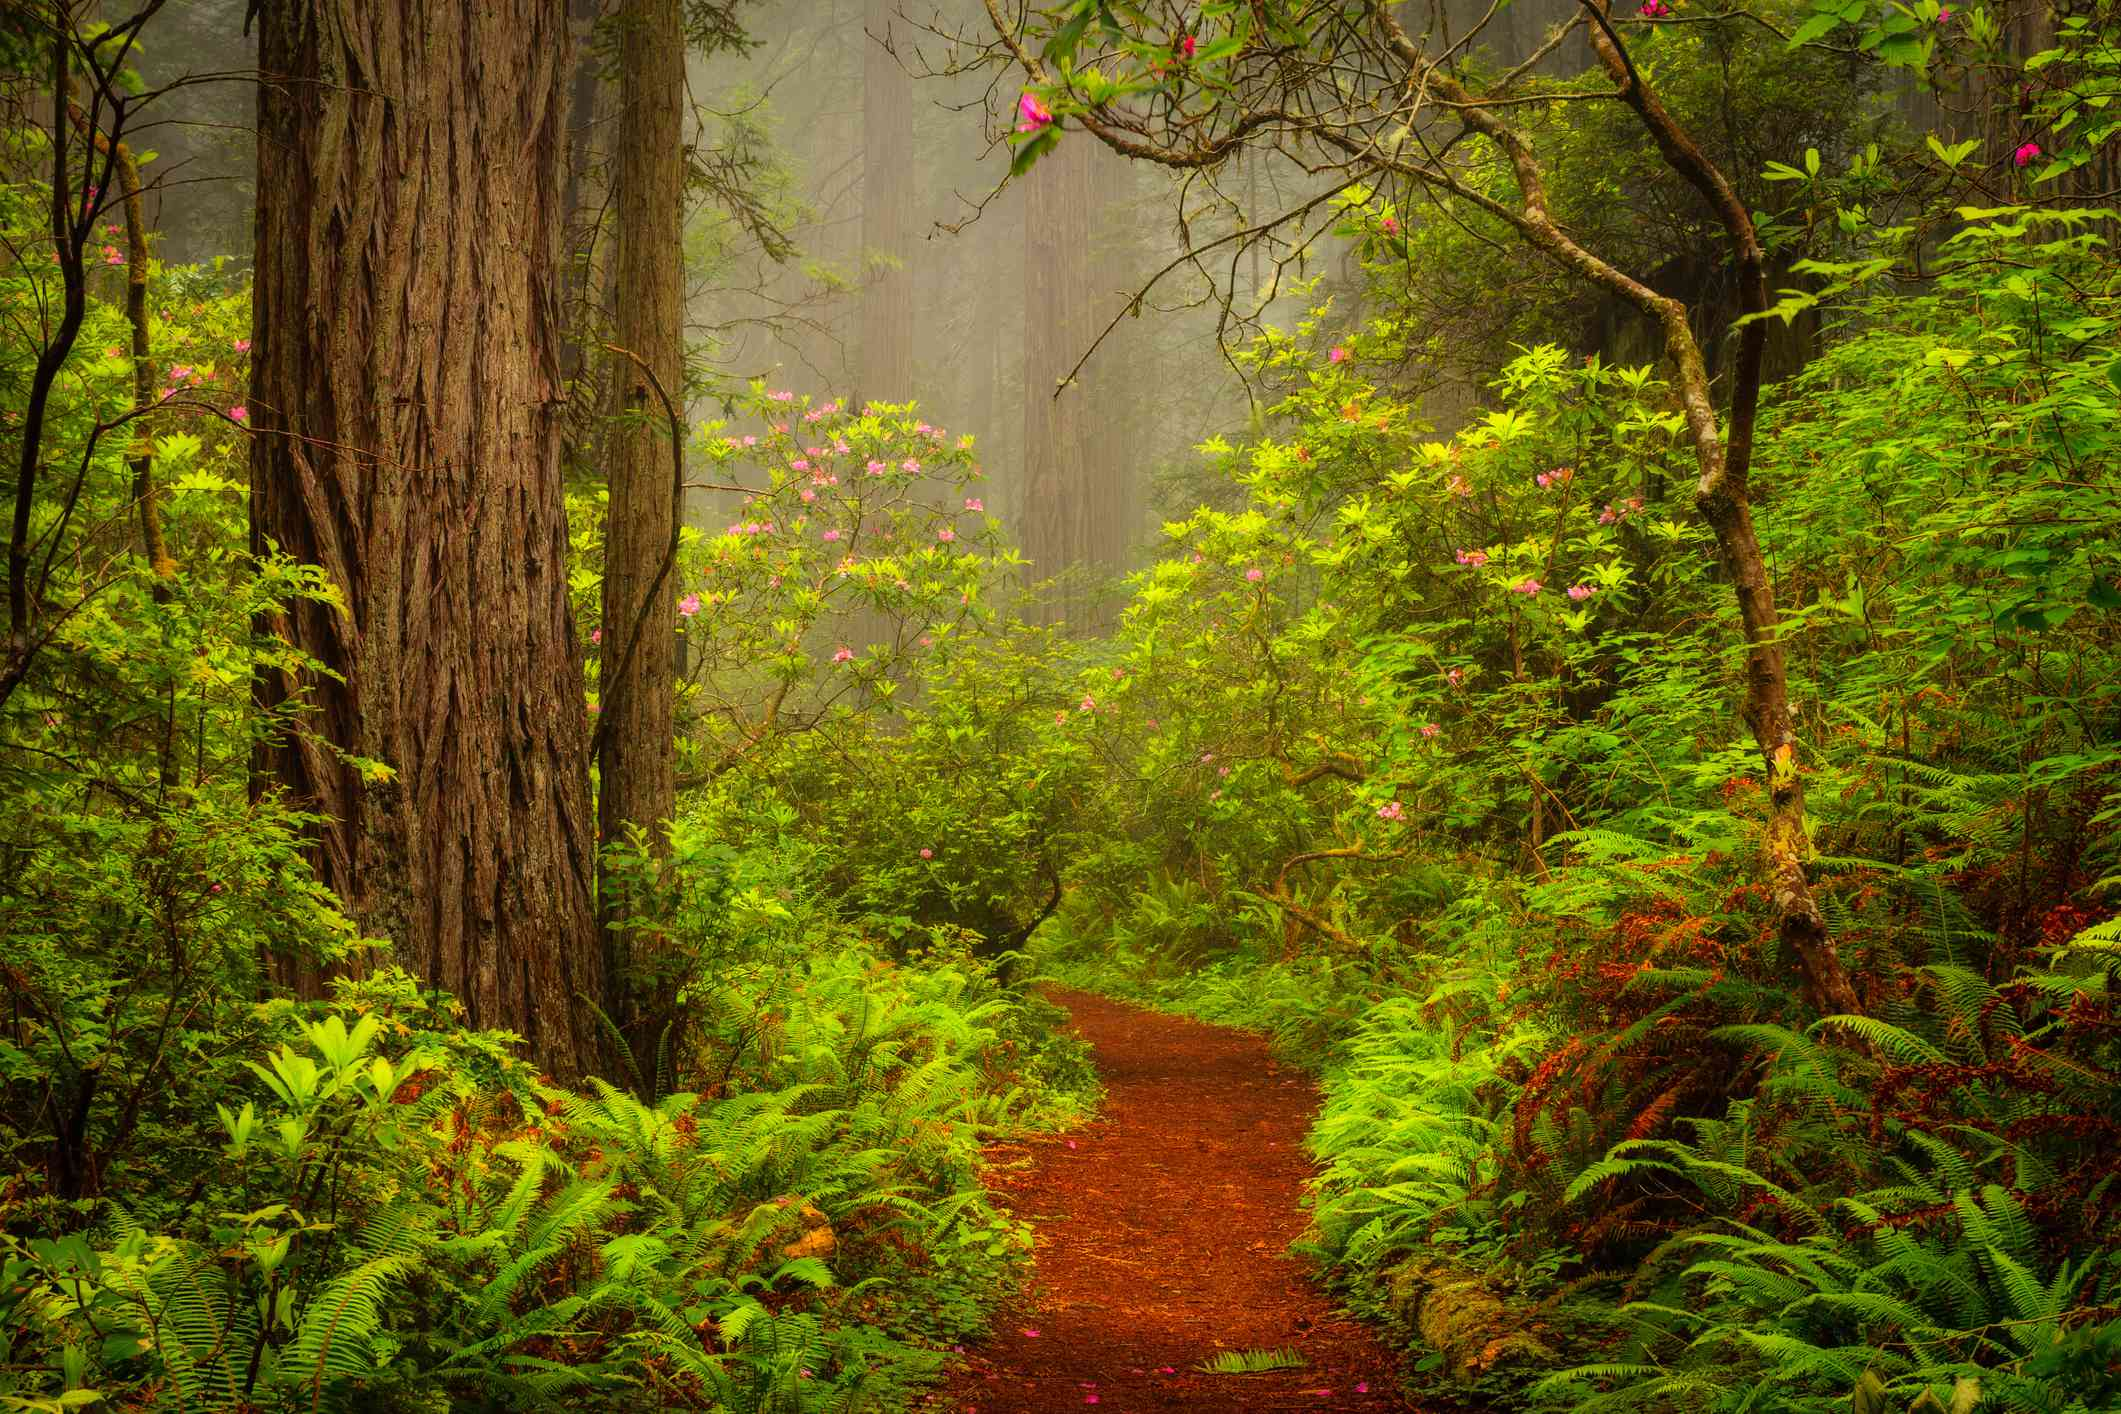 The Damnation Creek Trail in Del Norte Coast Redwoods State Park, California